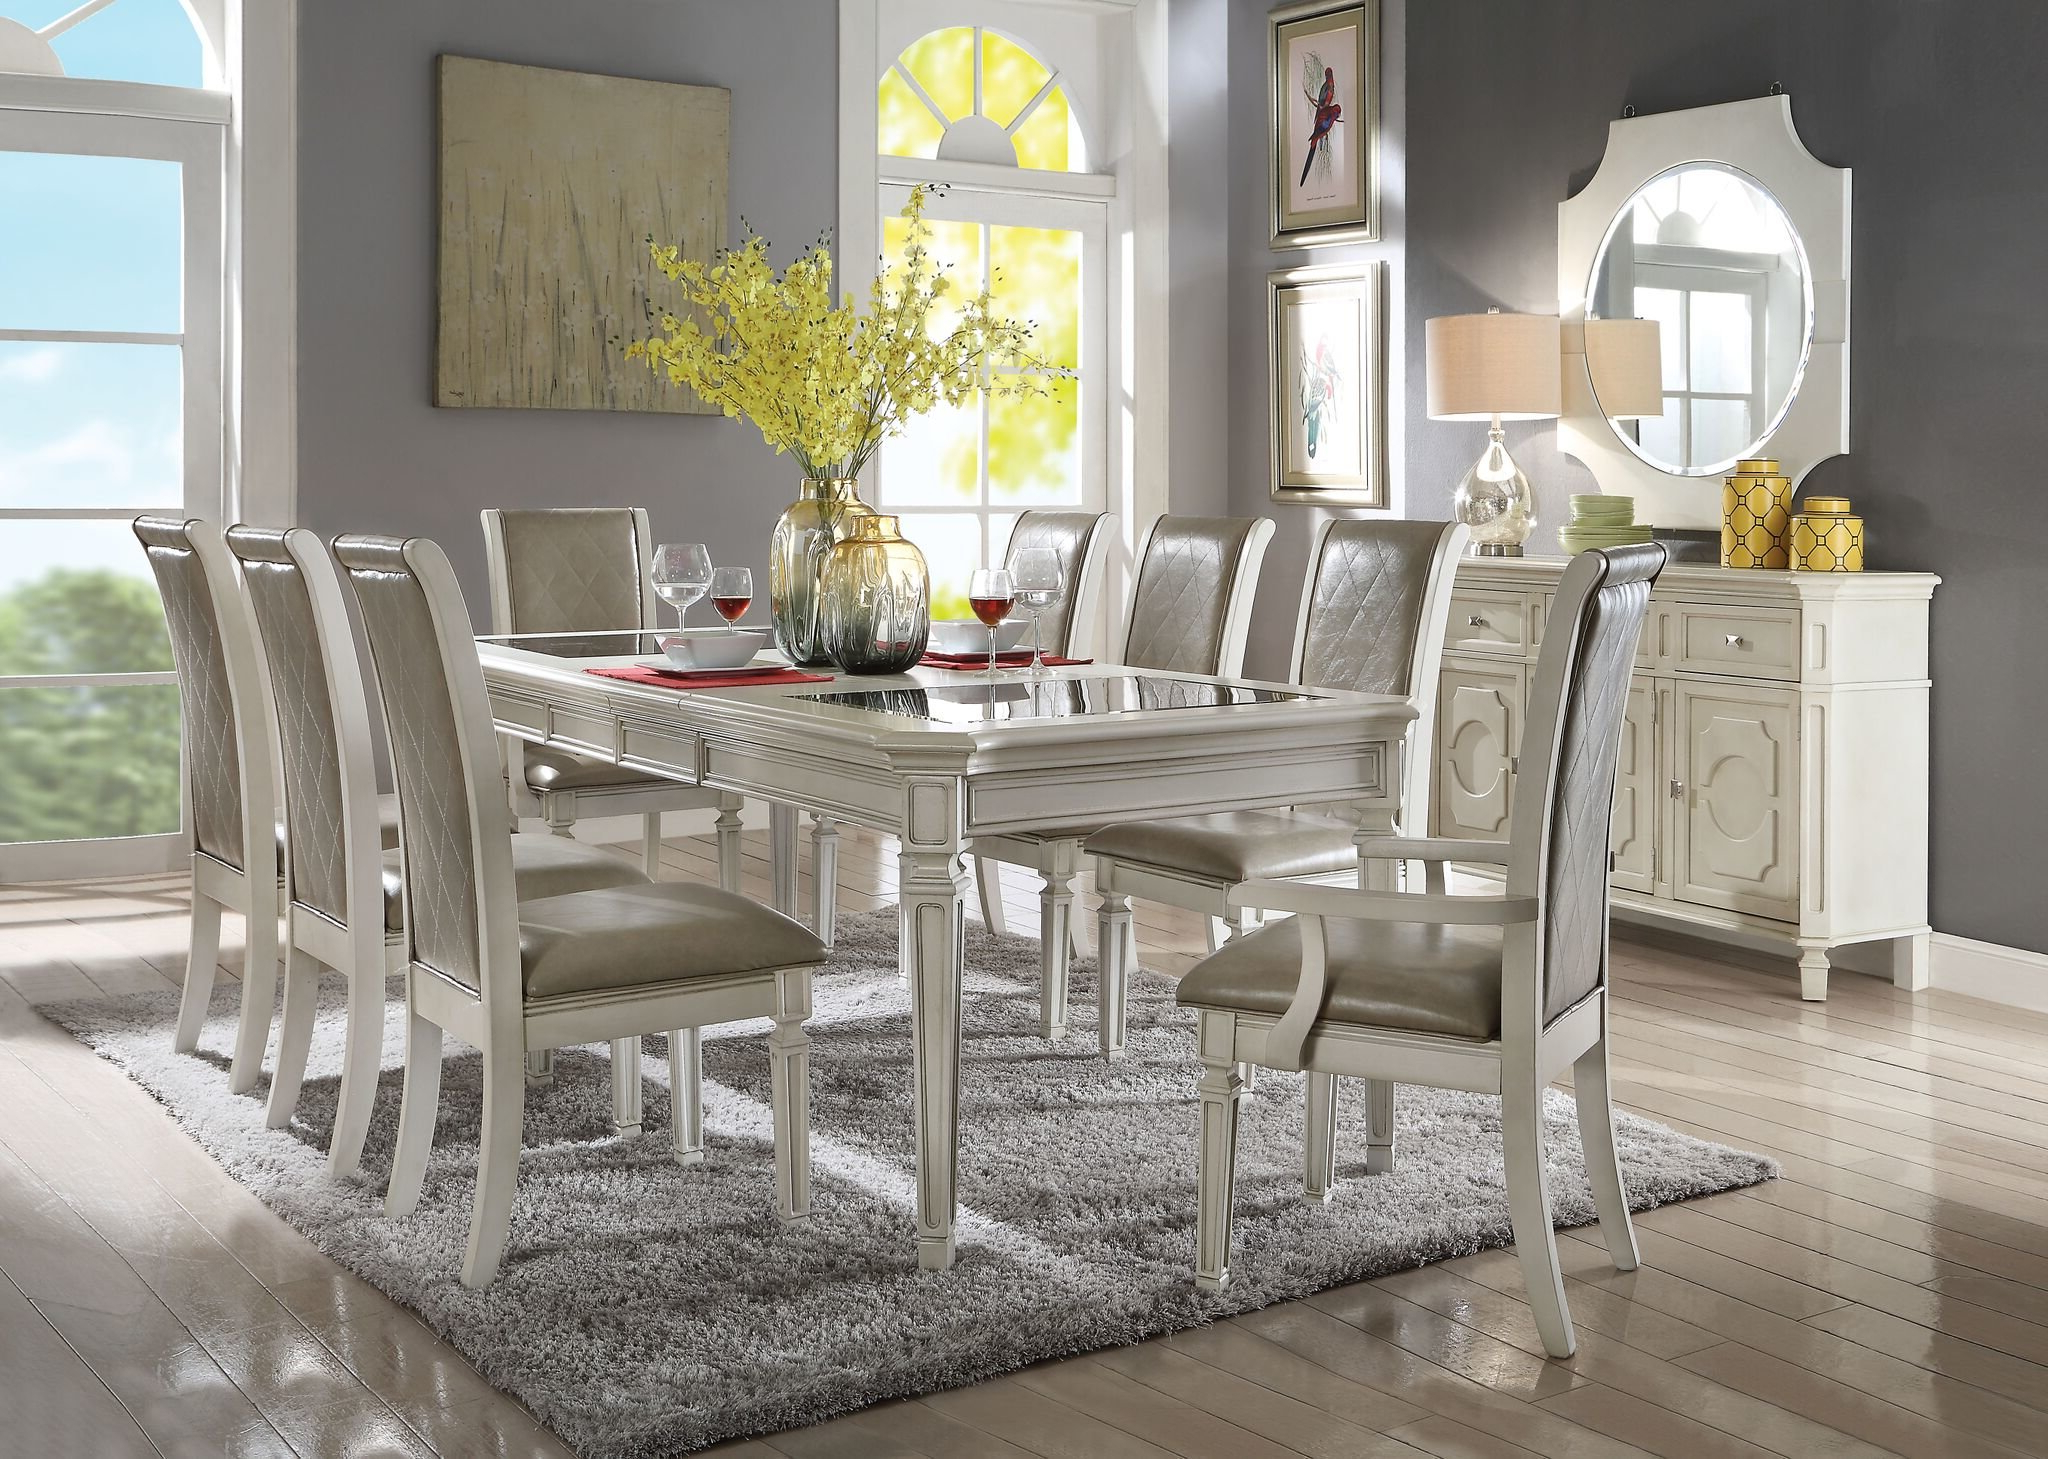 Lamotte Upholstered Dining Chair Throughout Well Known Lamotte 5 Piece Dining Sets (View 16 of 20)